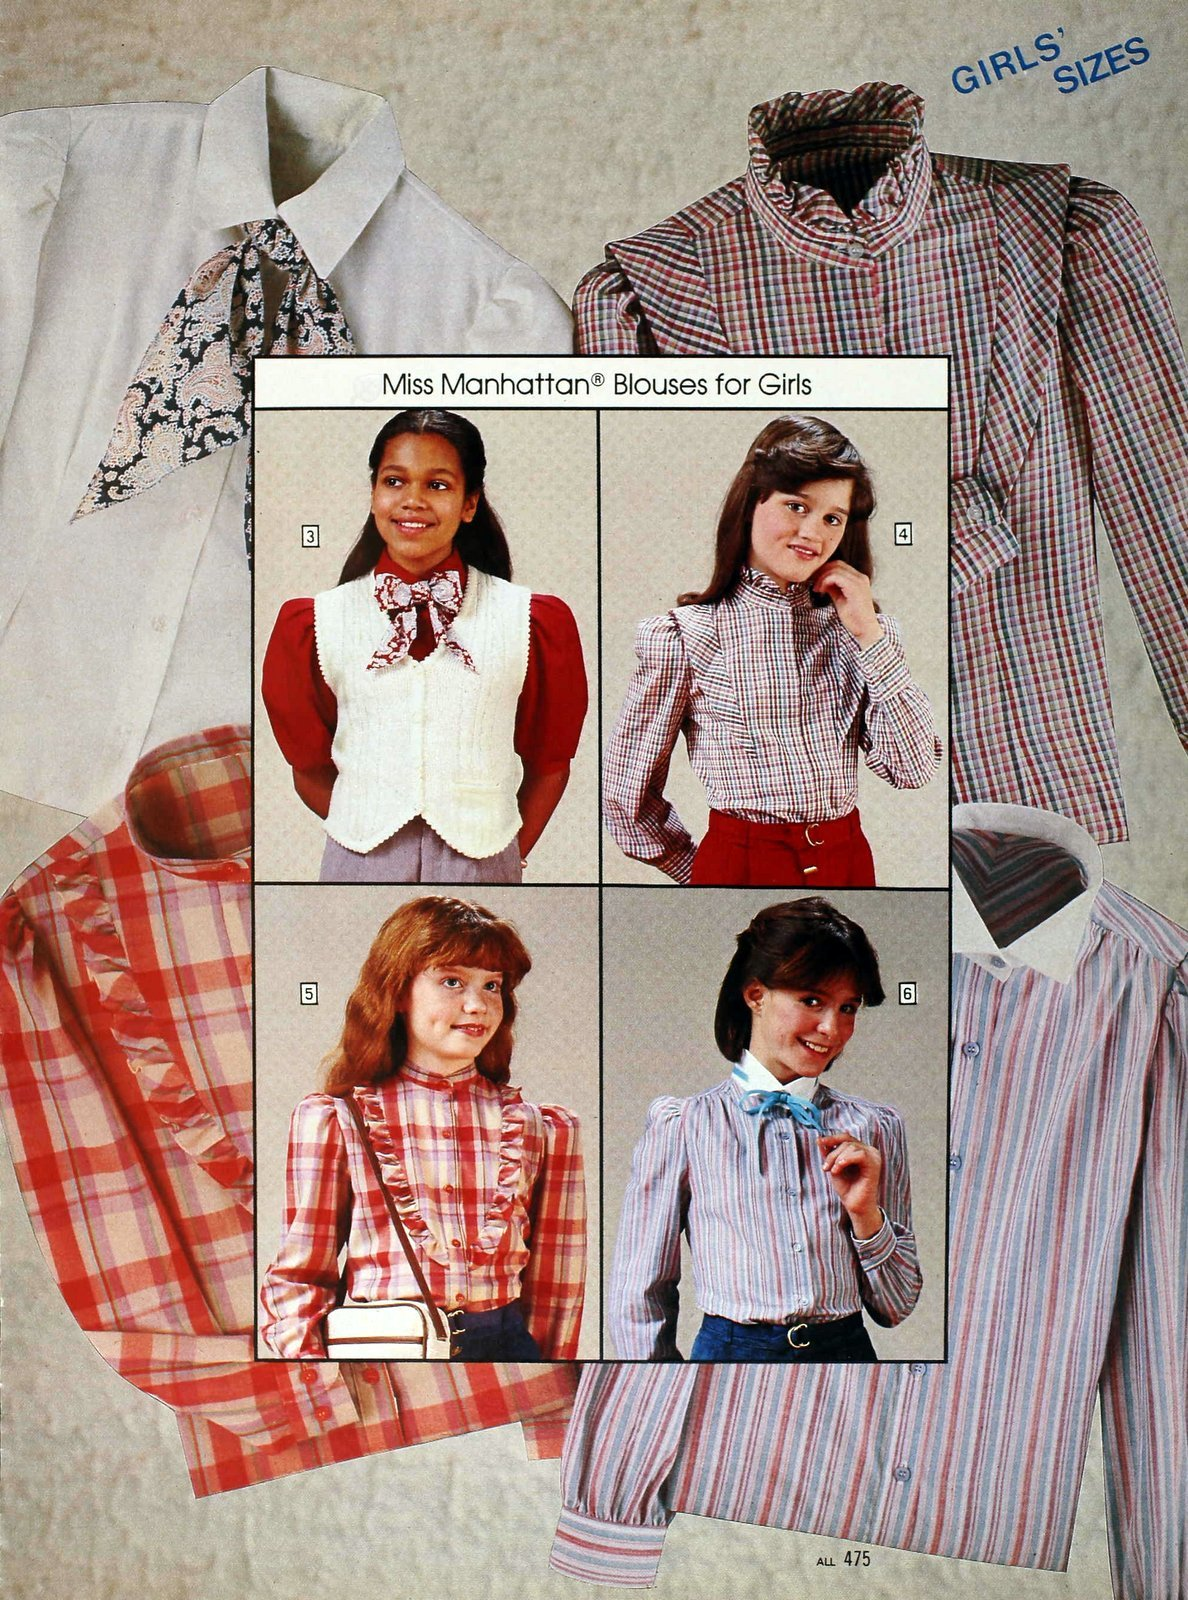 Vintage 80s blouse styles for girls from Miss Manhattan - Sears